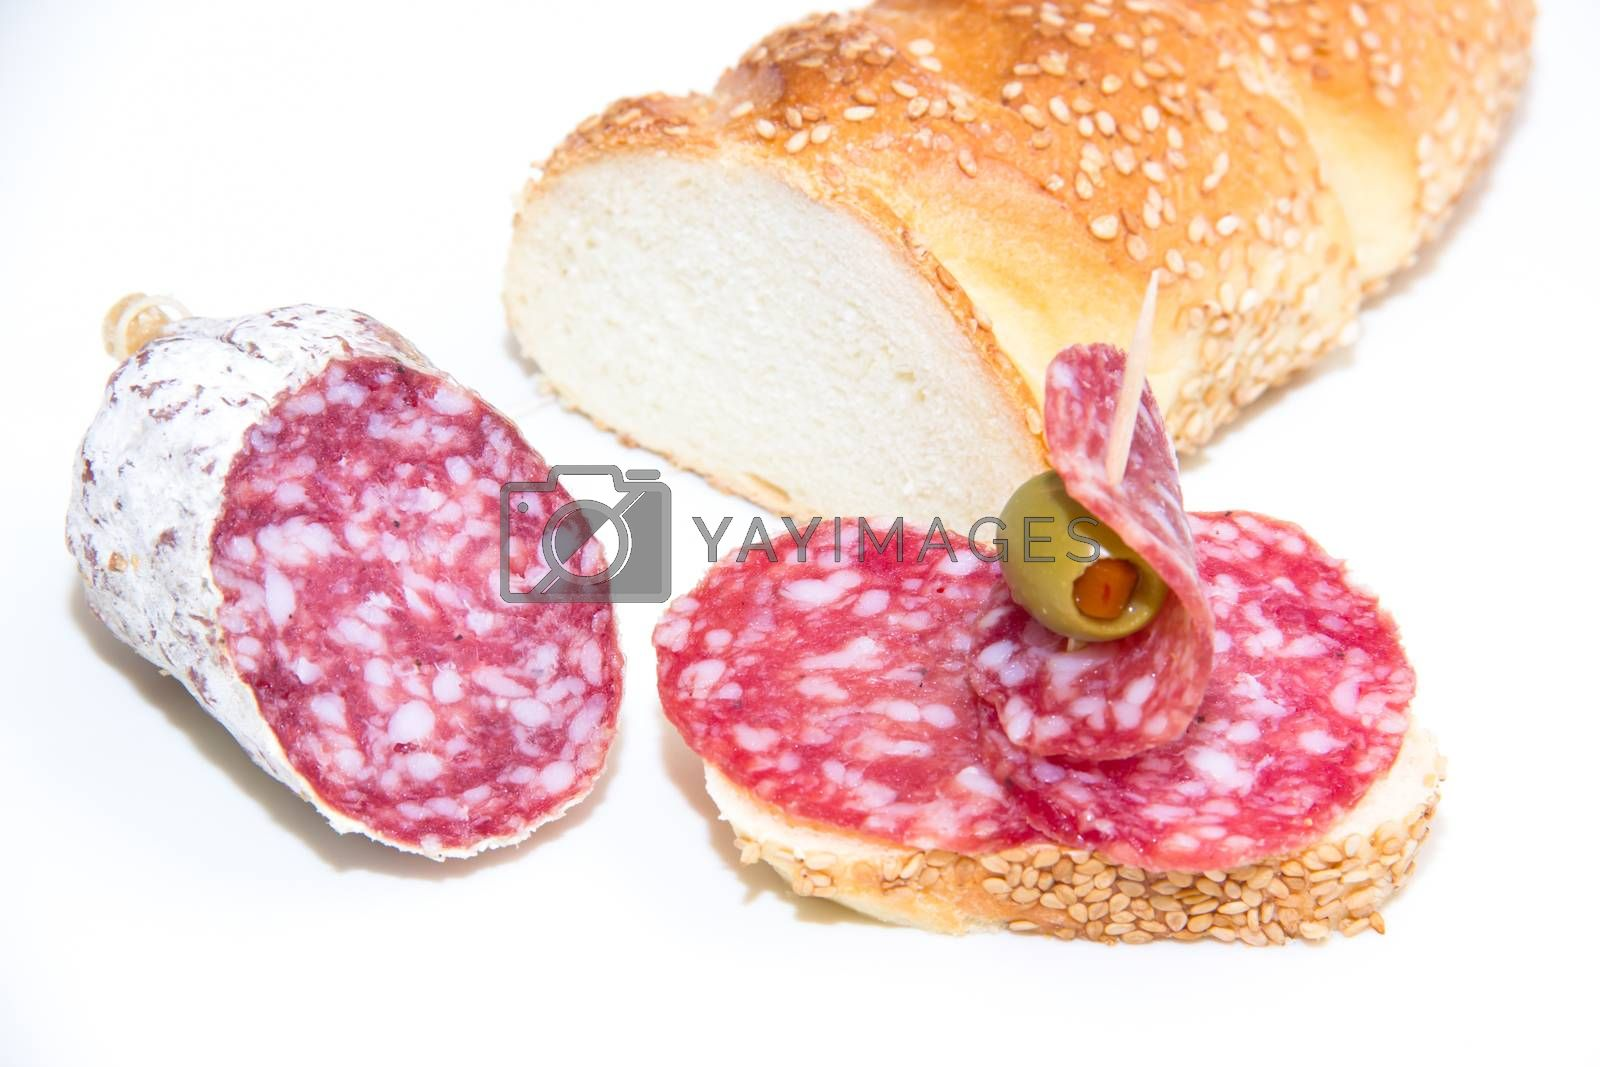 Bread with slices of salami on white background